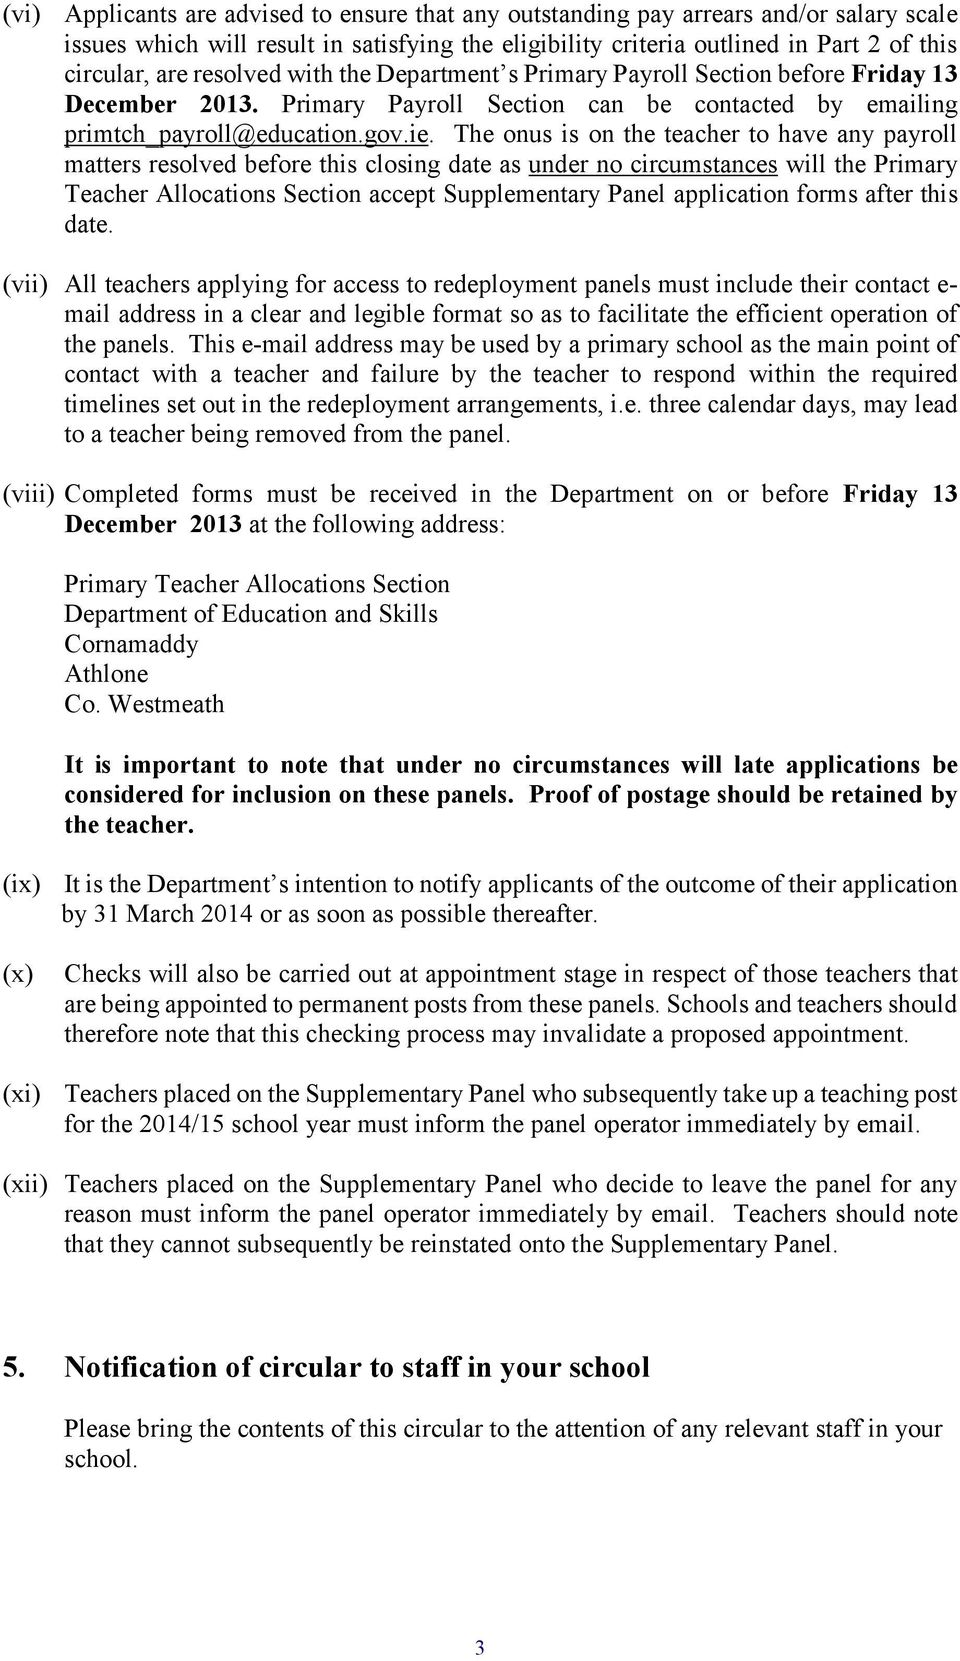 The onus is on the teacher to have any payroll matters resolved before this closing date as under no circumstances will the Primary Teacher Allocations Section accept Supplementary Panel application